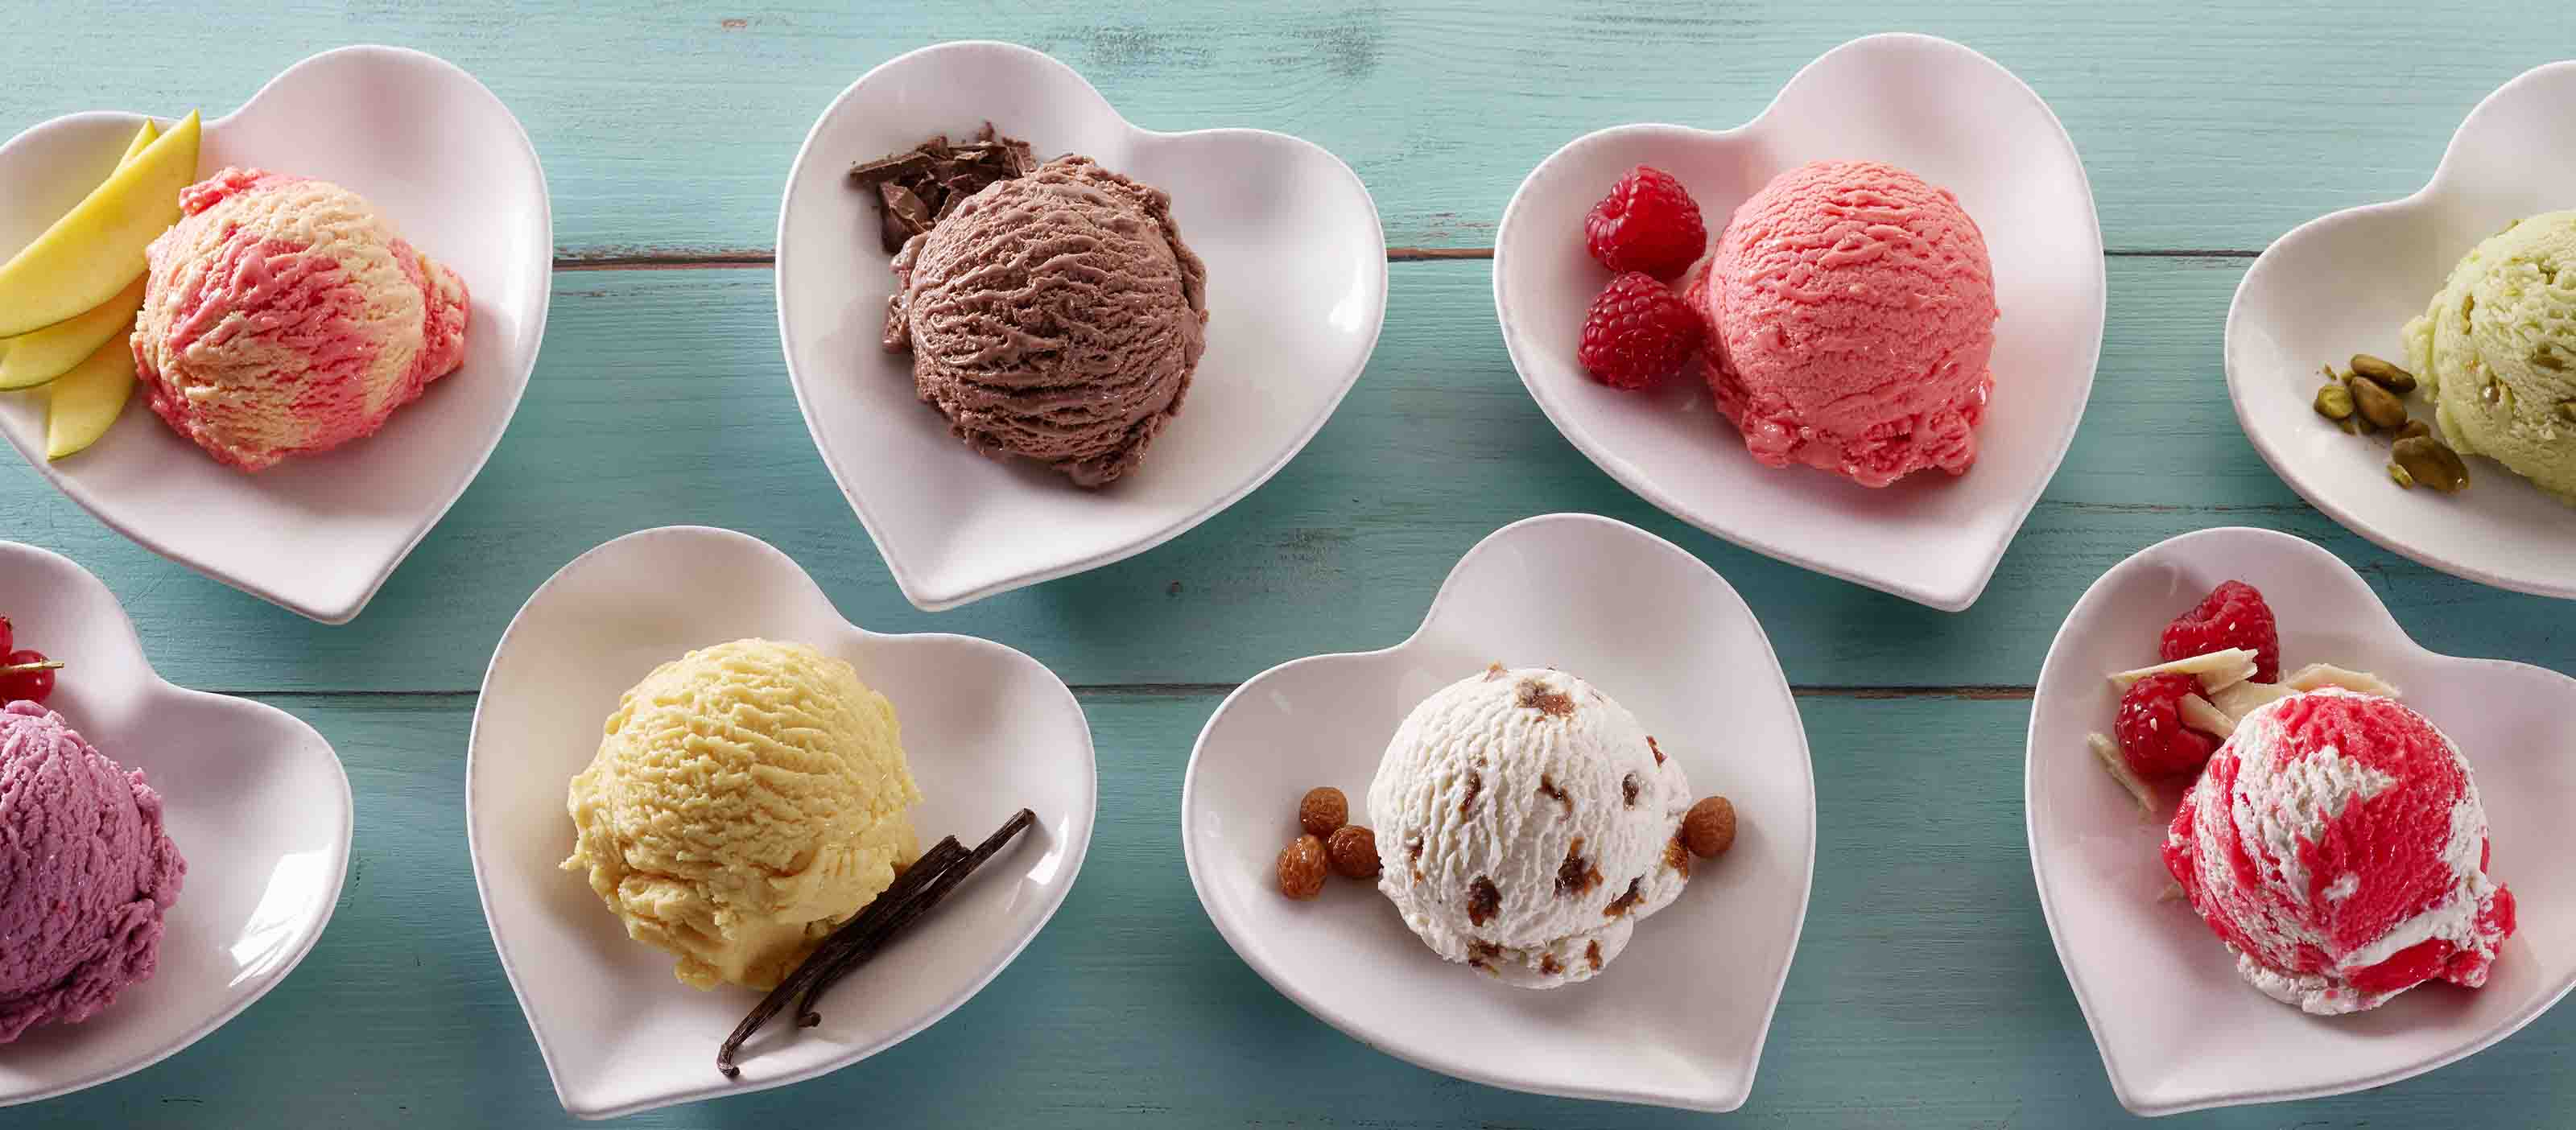 GB Glace's ice cream production is accelerated with GE HMI/SCADA software